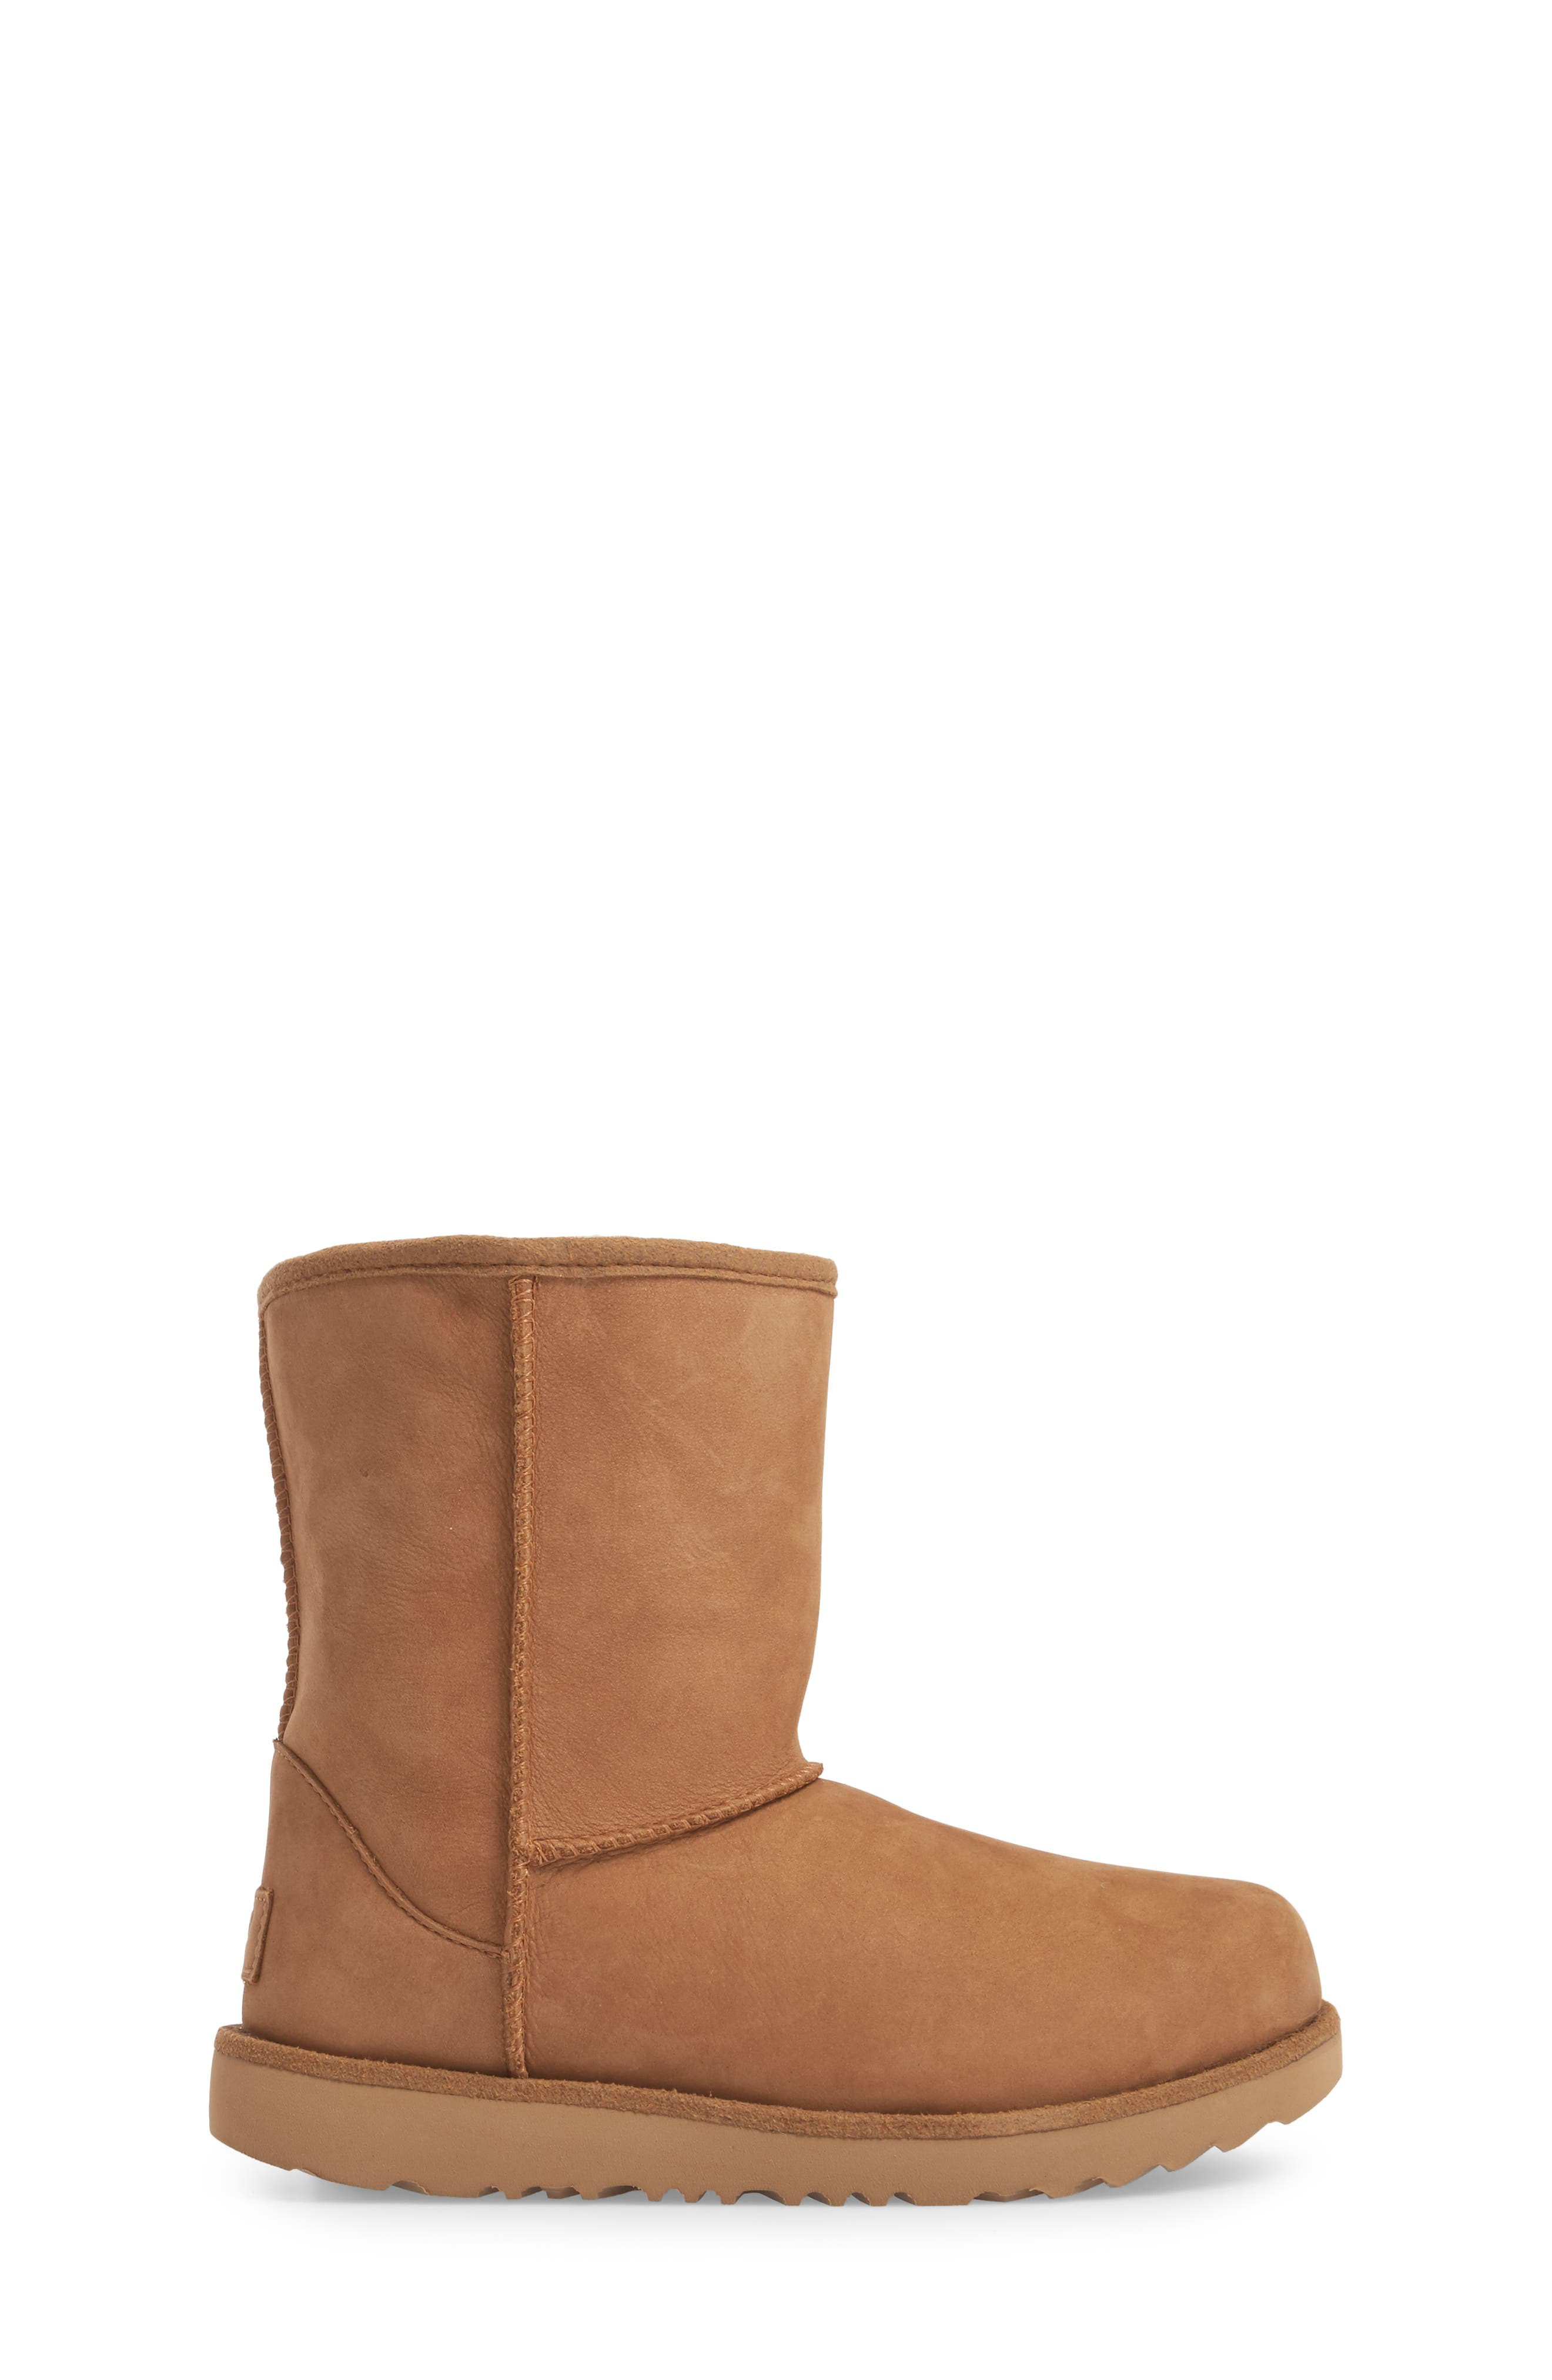 UGG<SUP>®</SUP>, Classic Short II Waterproof Boot, Alternate thumbnail 3, color, CHESTNUT